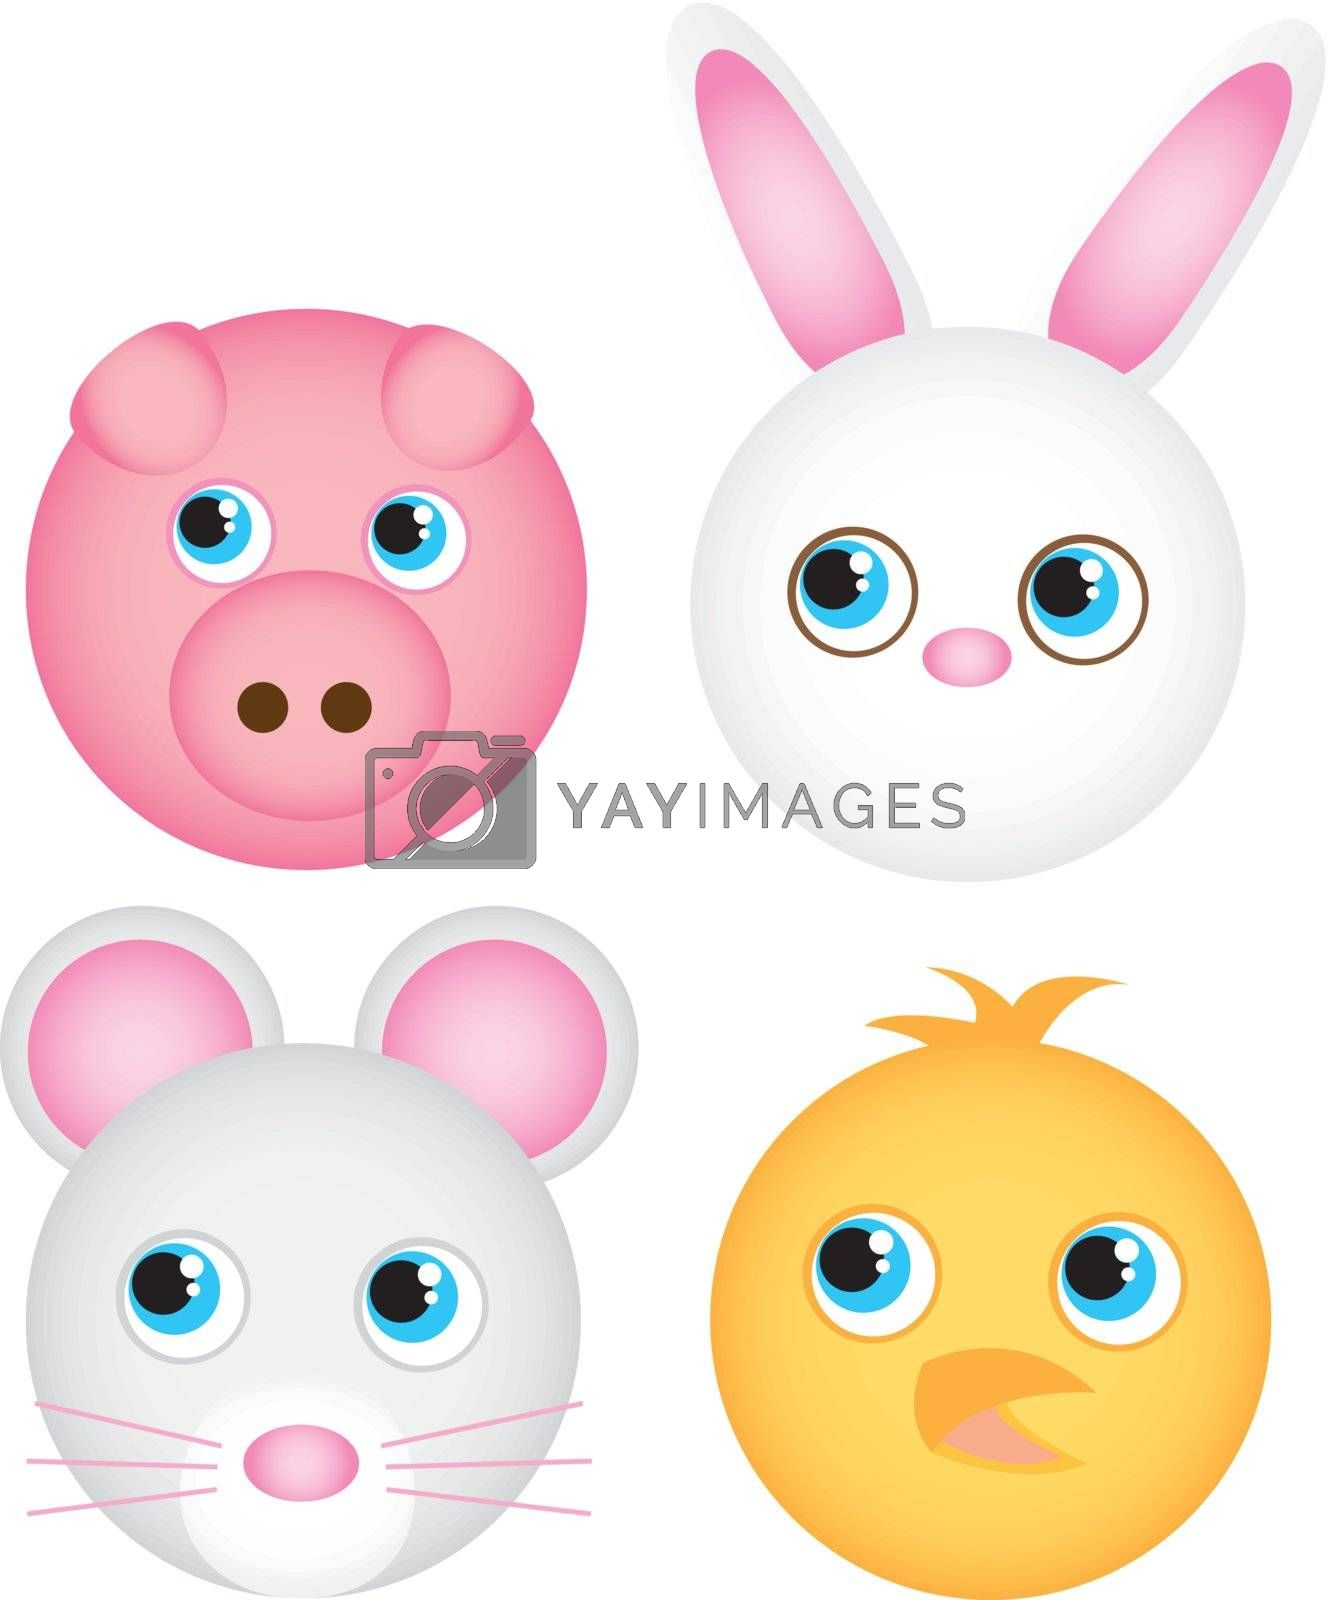 cute animals faces isolated over white background. vector